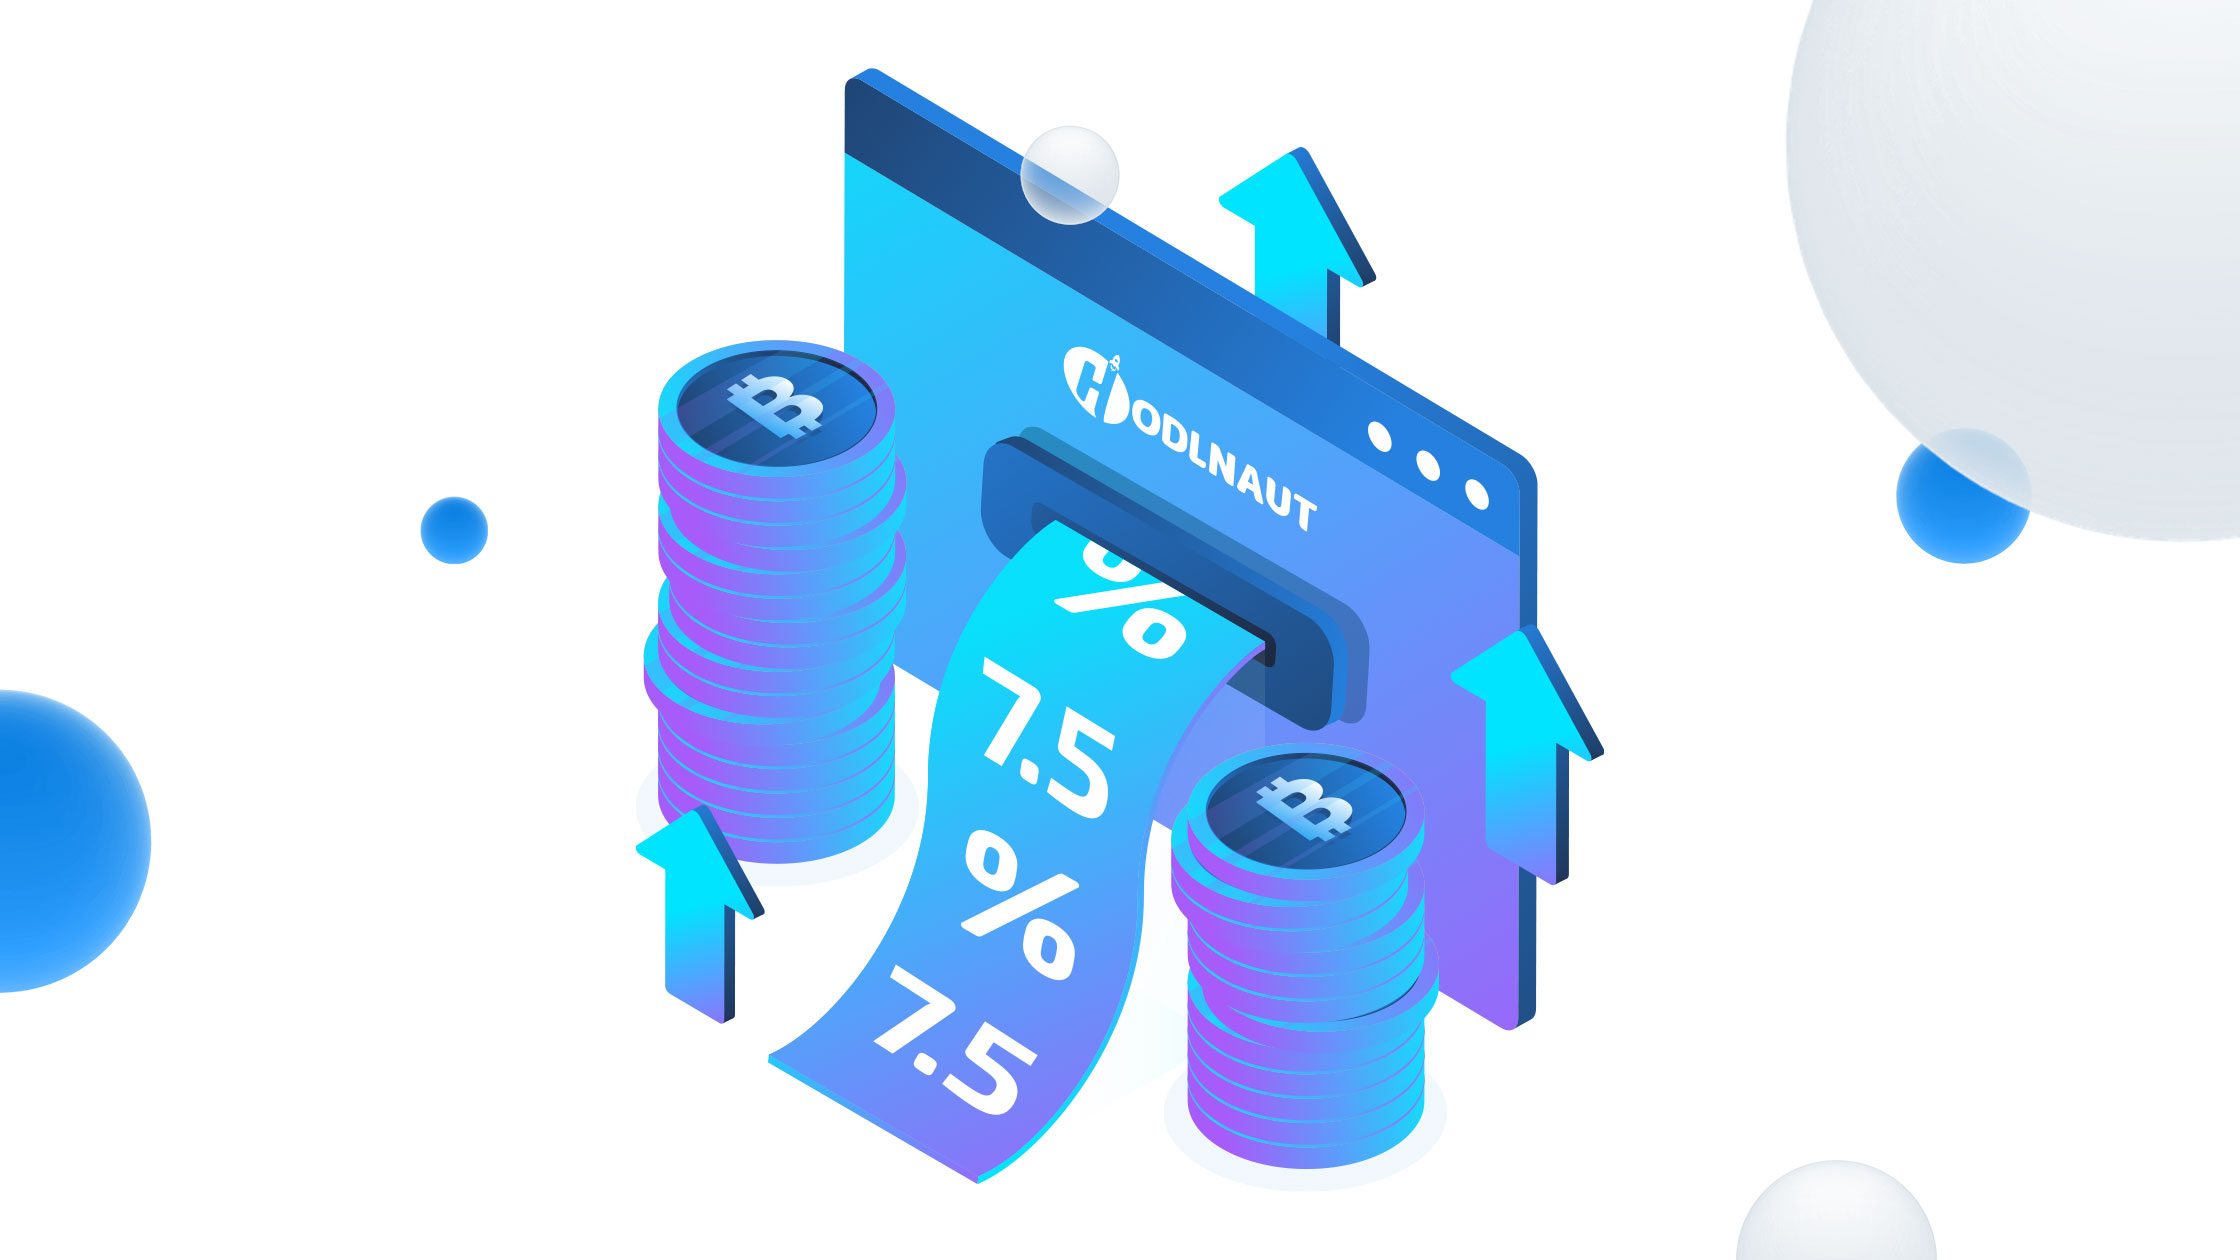 Hodlnaut Announces Tiered Interest Rates, Increases BTC Interest to 7.5% APY